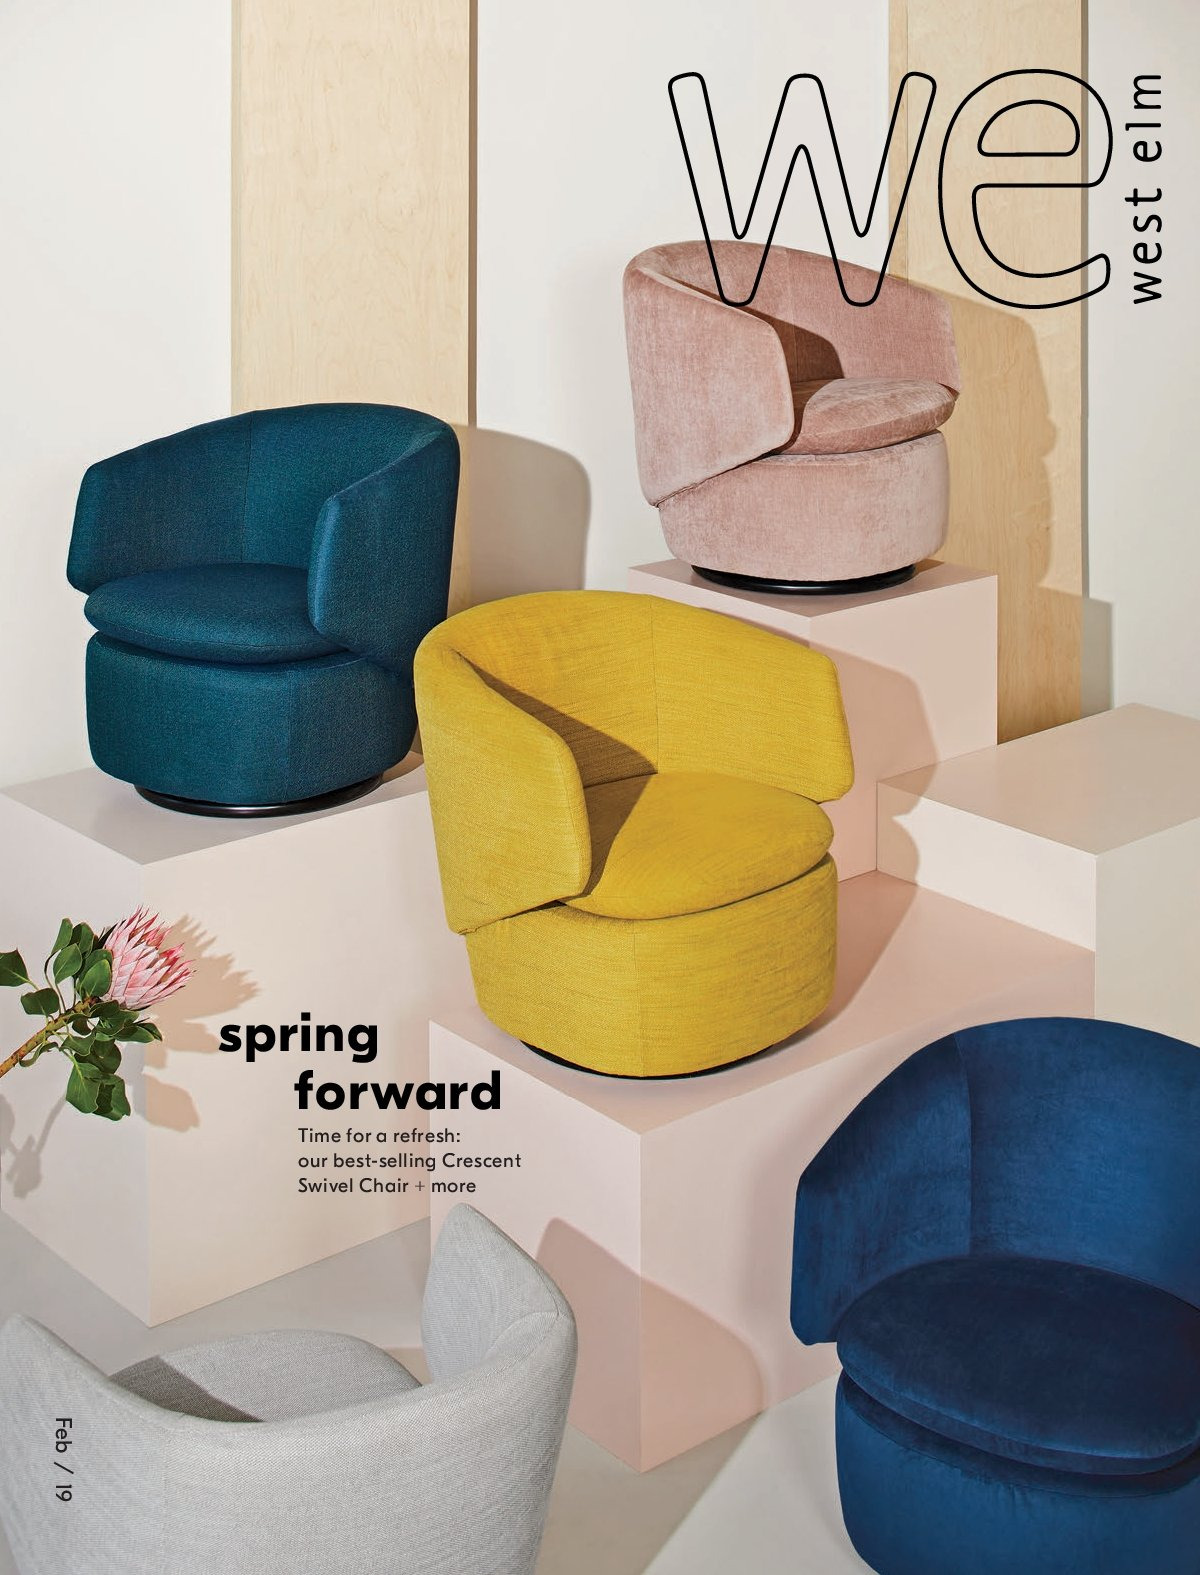 West Elm Flyer - February 01, 2019 - February 28, 2019 - Sales products - swivel chair, chair. Page 1.